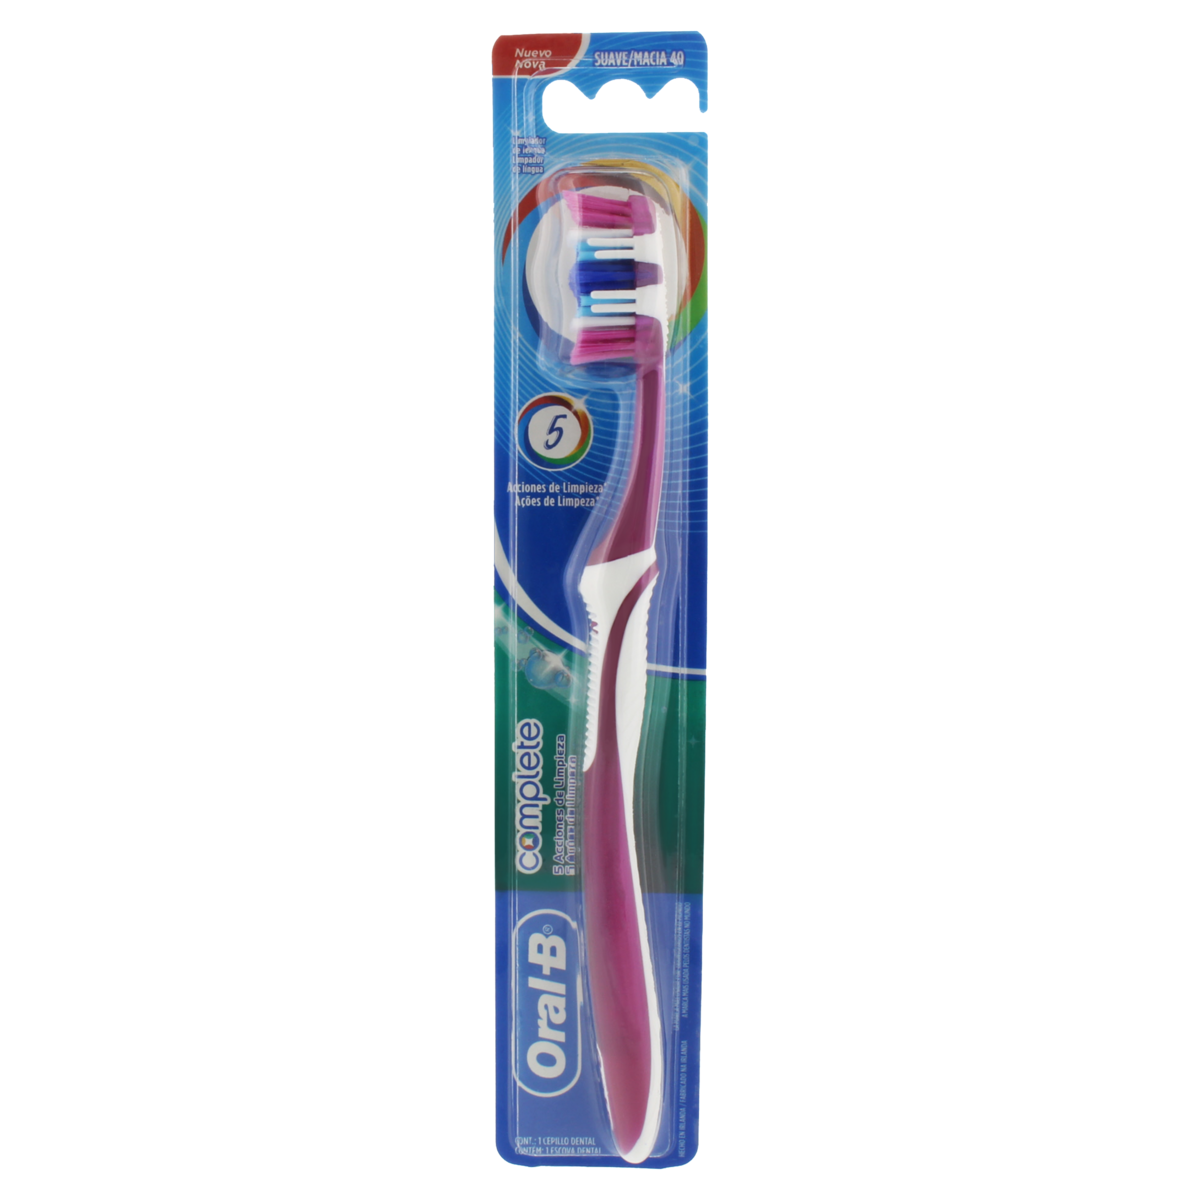 3014260014414 - ESCOVA DENTAL MACIA ORAL-B COMPLETE